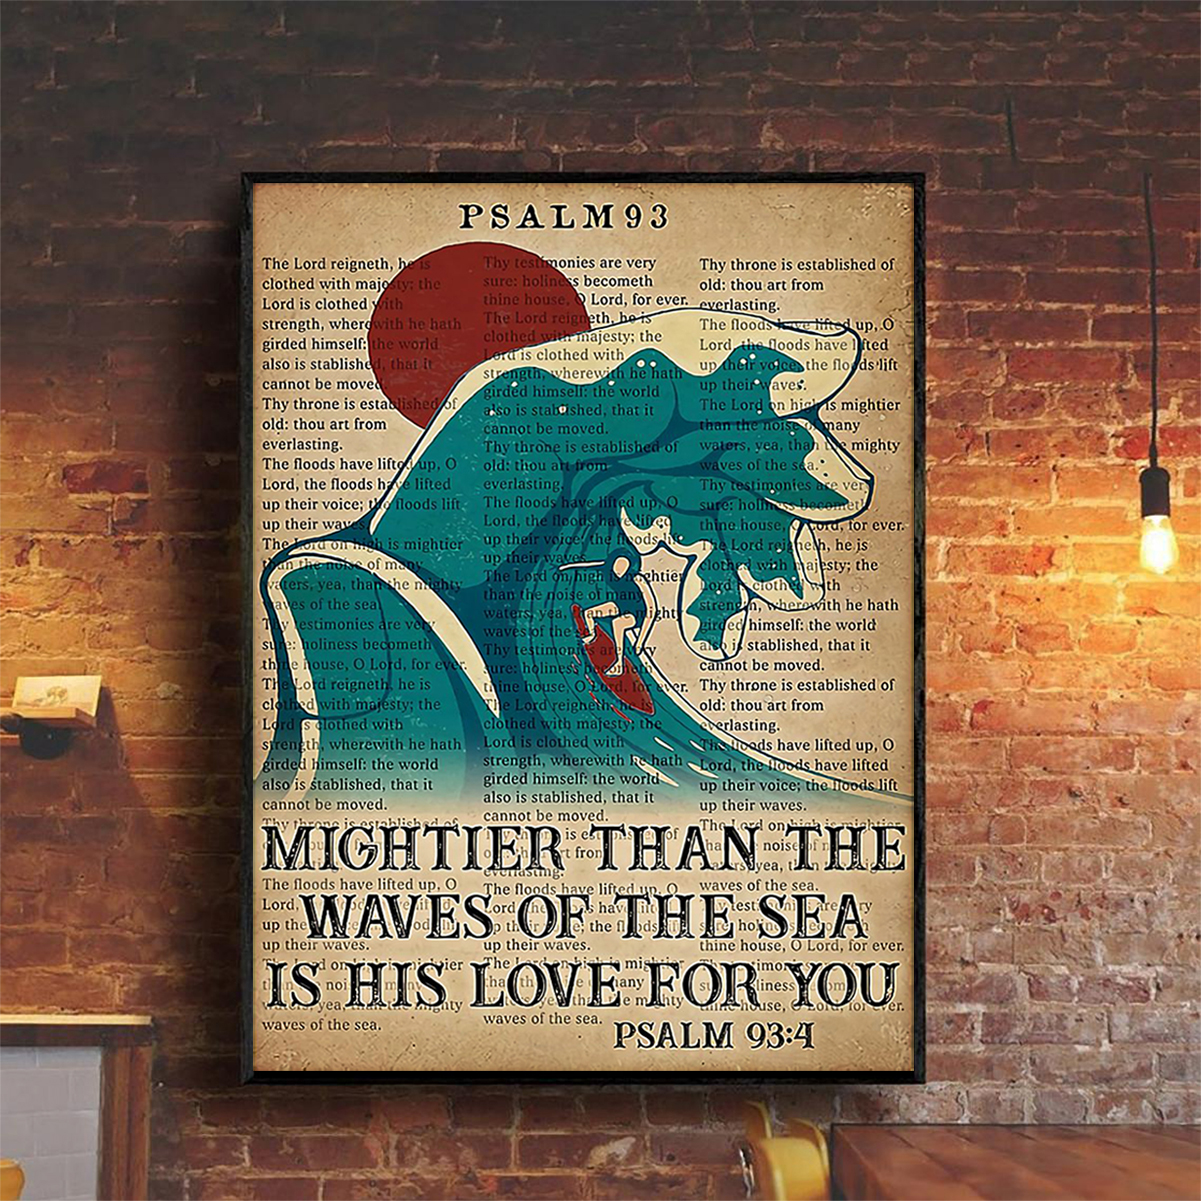 Mightier than the waves of the sea is his love for you poster A2